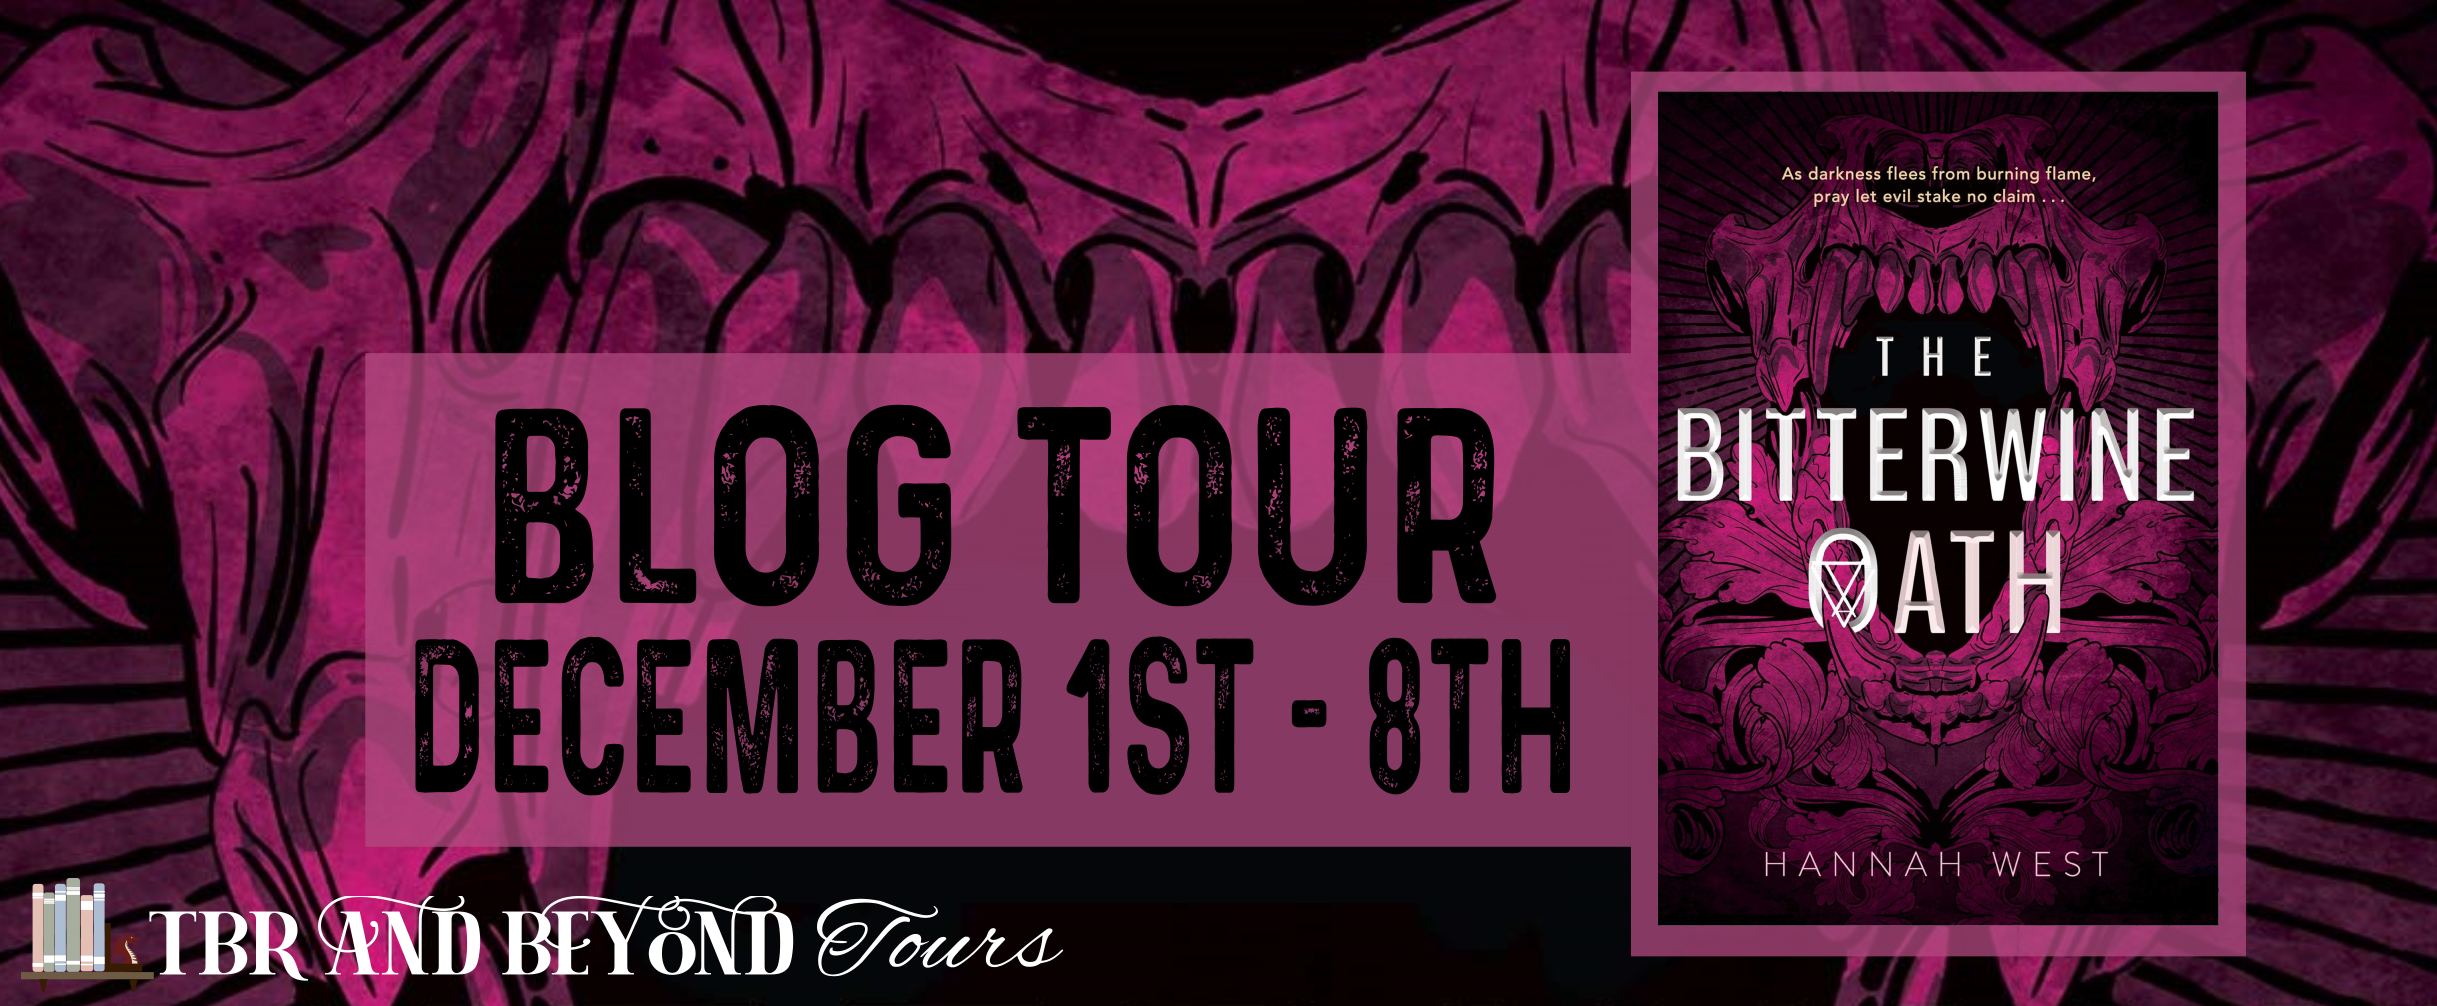 Blog Tour: The Bitterwine Oath by Hannah West (Interview + Bookstagram!)